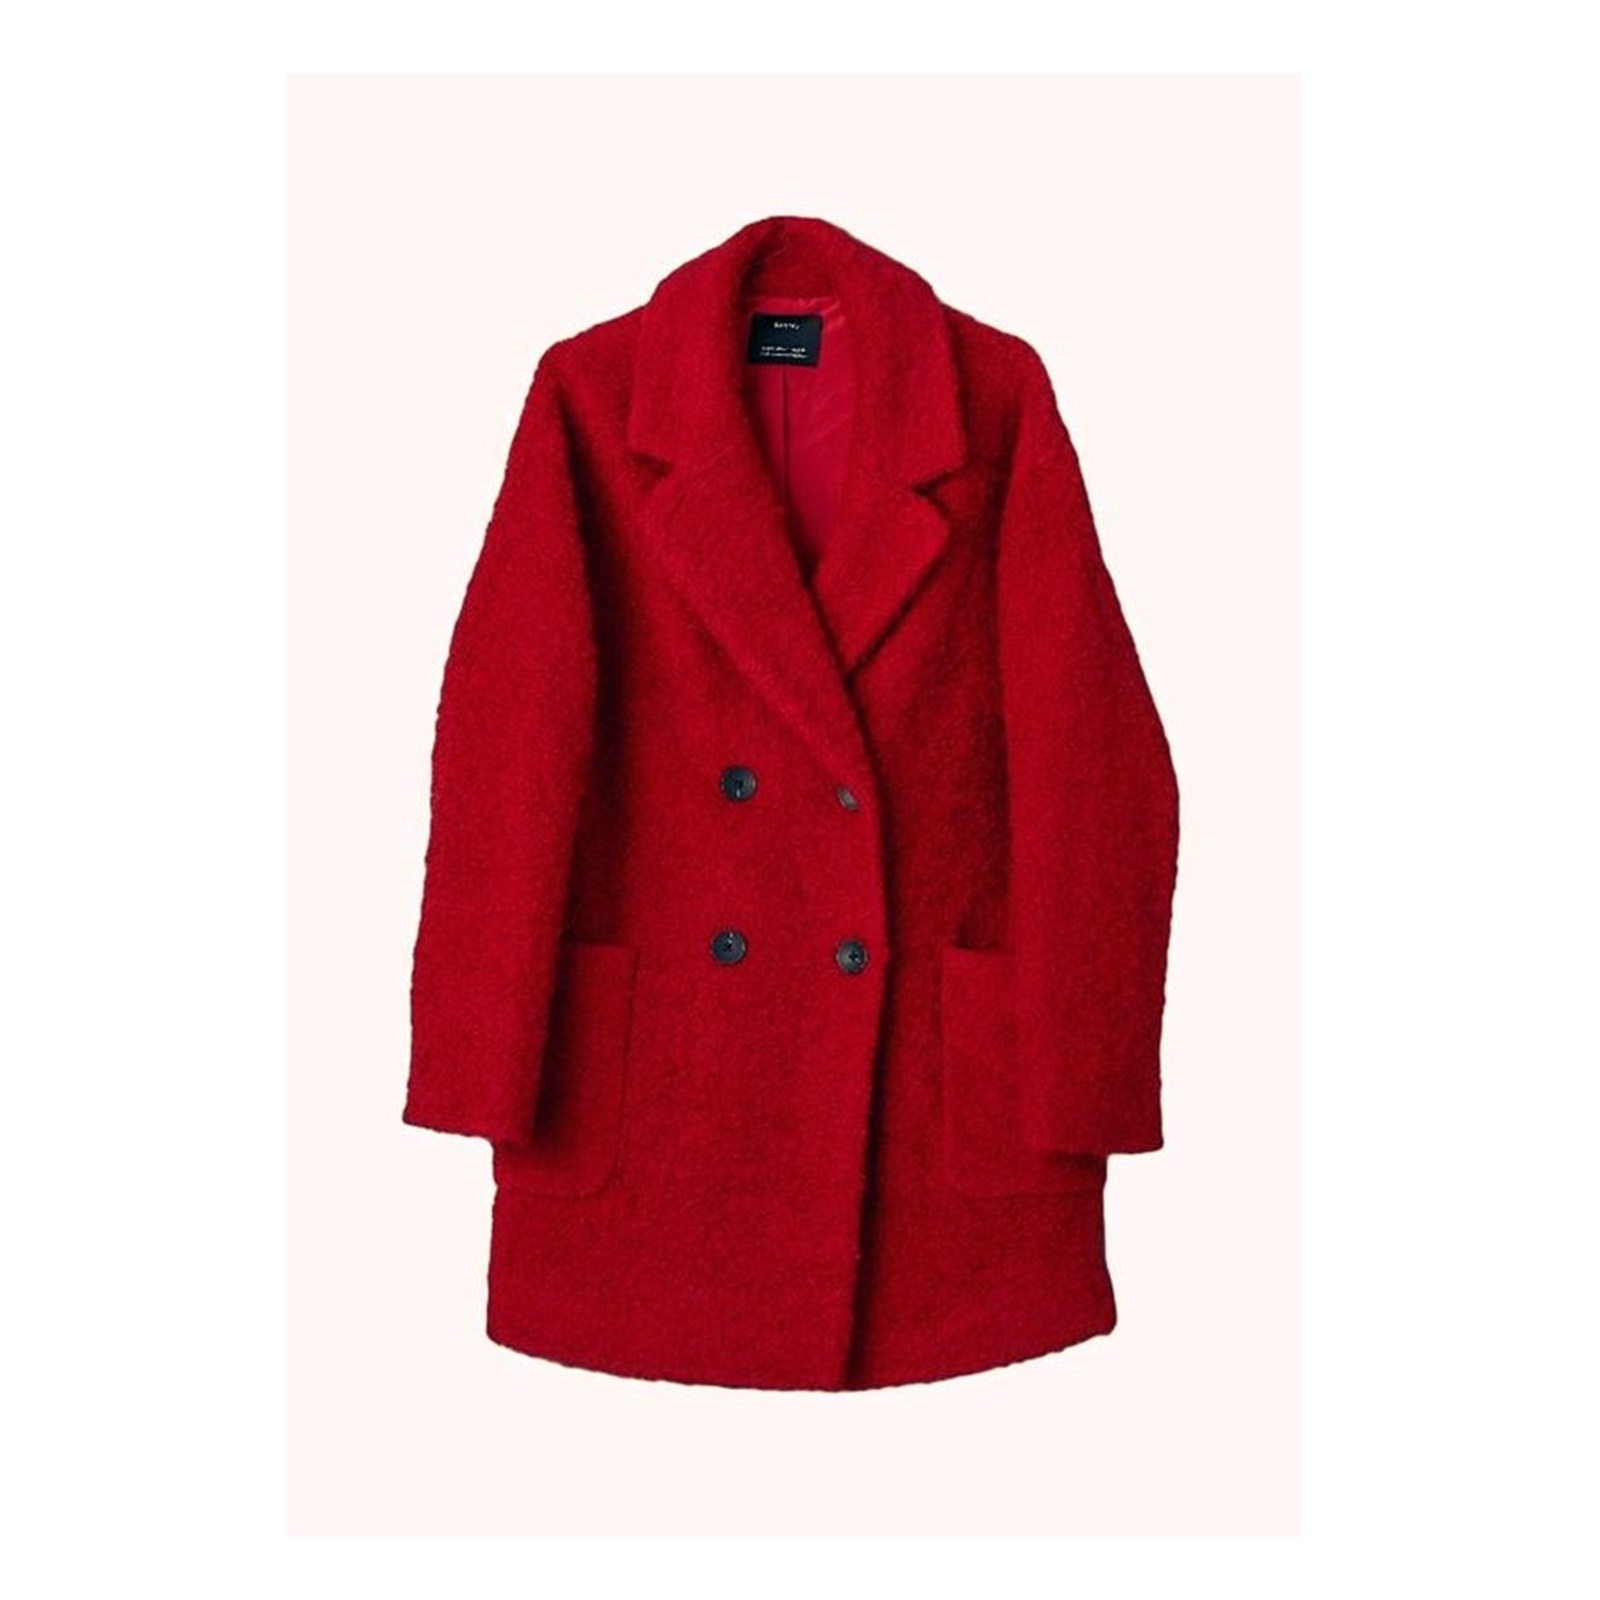 4 Outfits for Valentine's Day with Red Coats